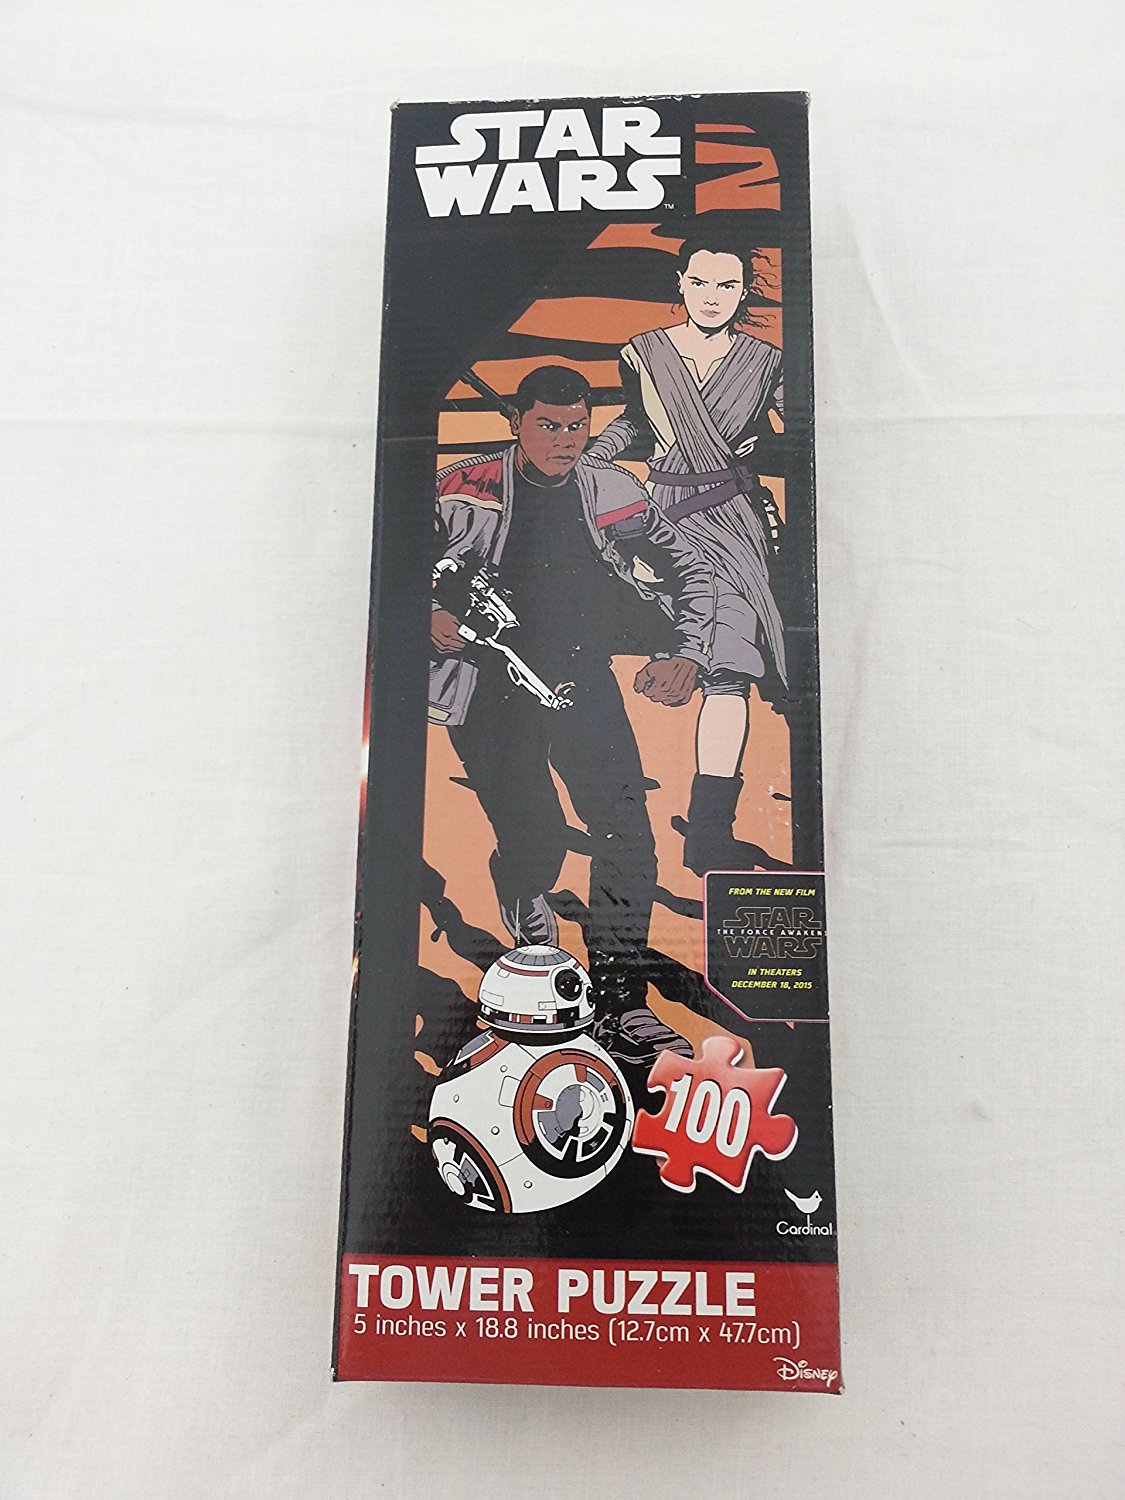 Star Wars 100 pc Tower Puzzle 12.7 cm X 47.7 cm